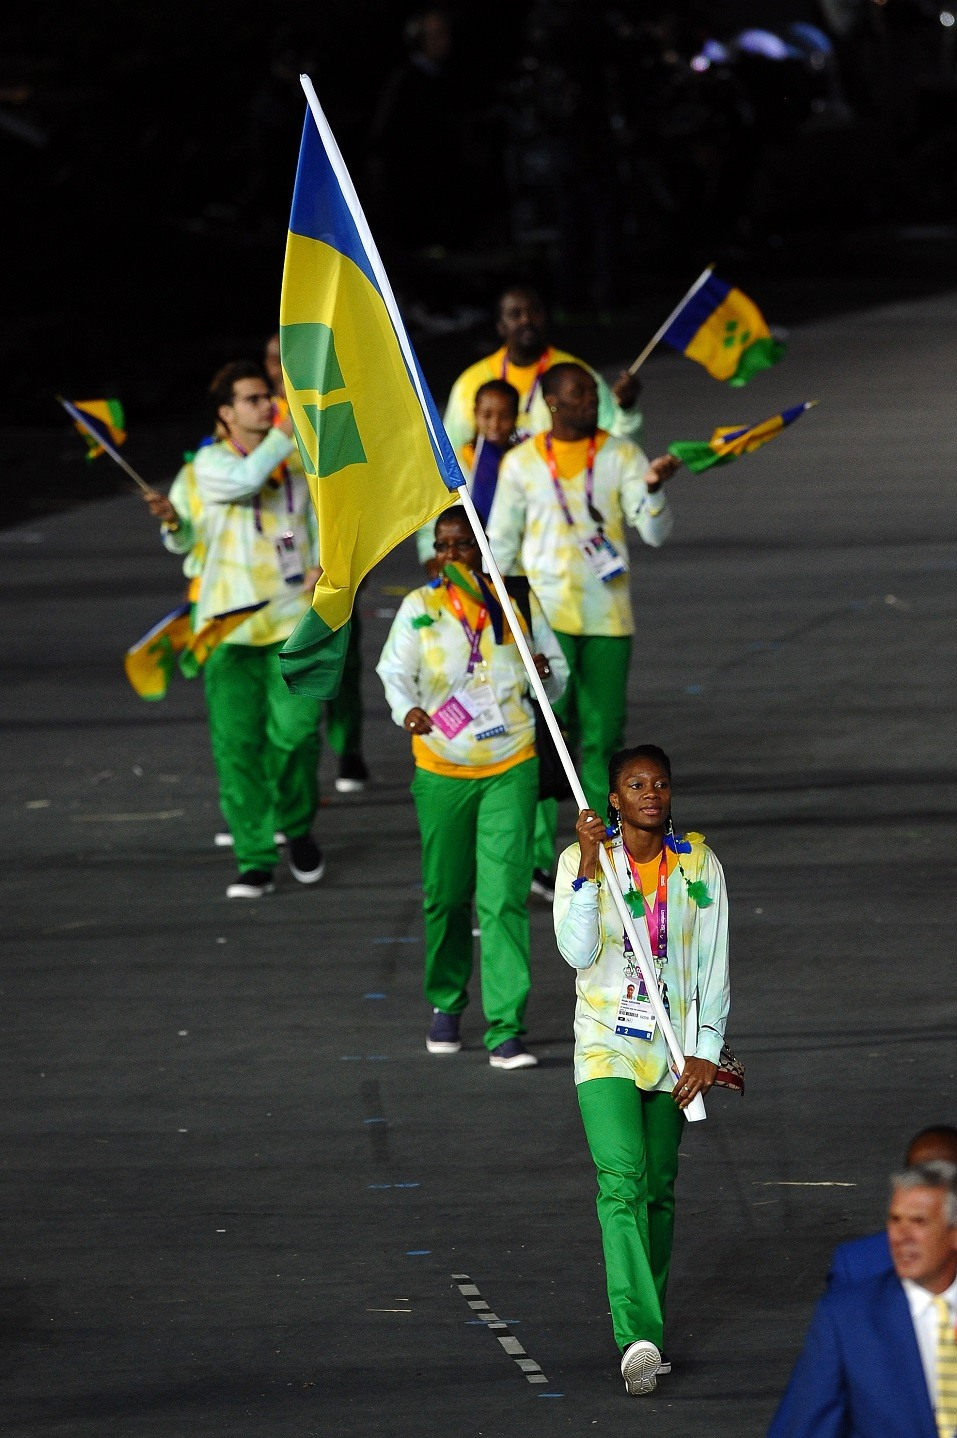 Kineke Alexander of the Saint Vincent and the Grenadines Olympic athletics team